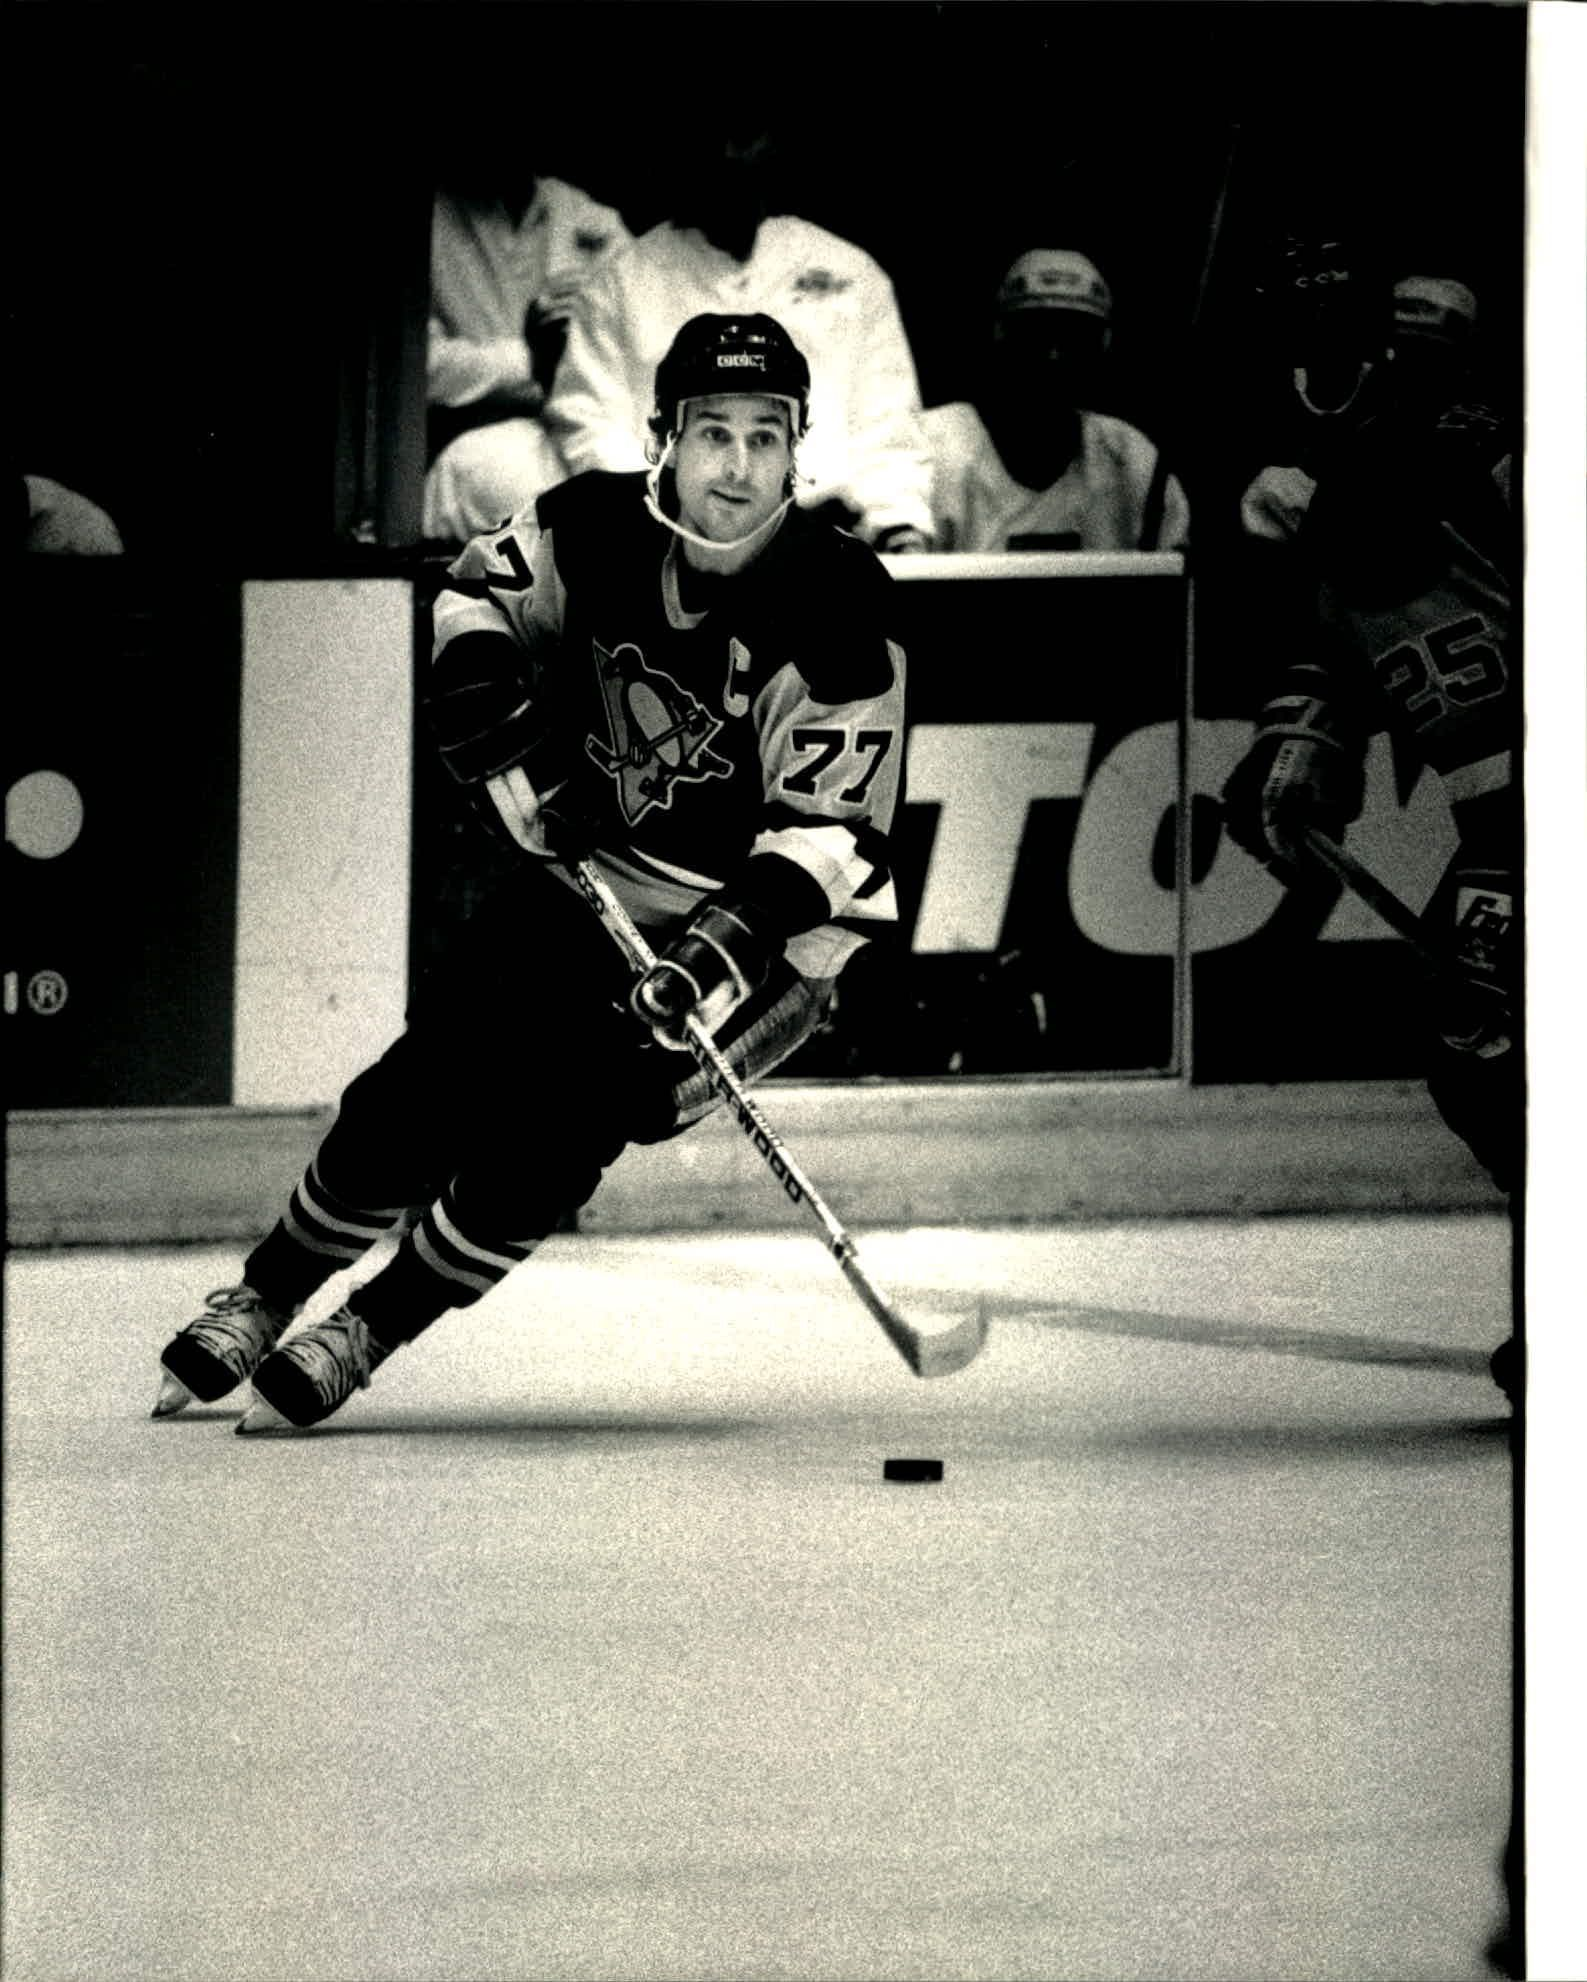 Paul Coffey is a Canadian retired professional ice hockey